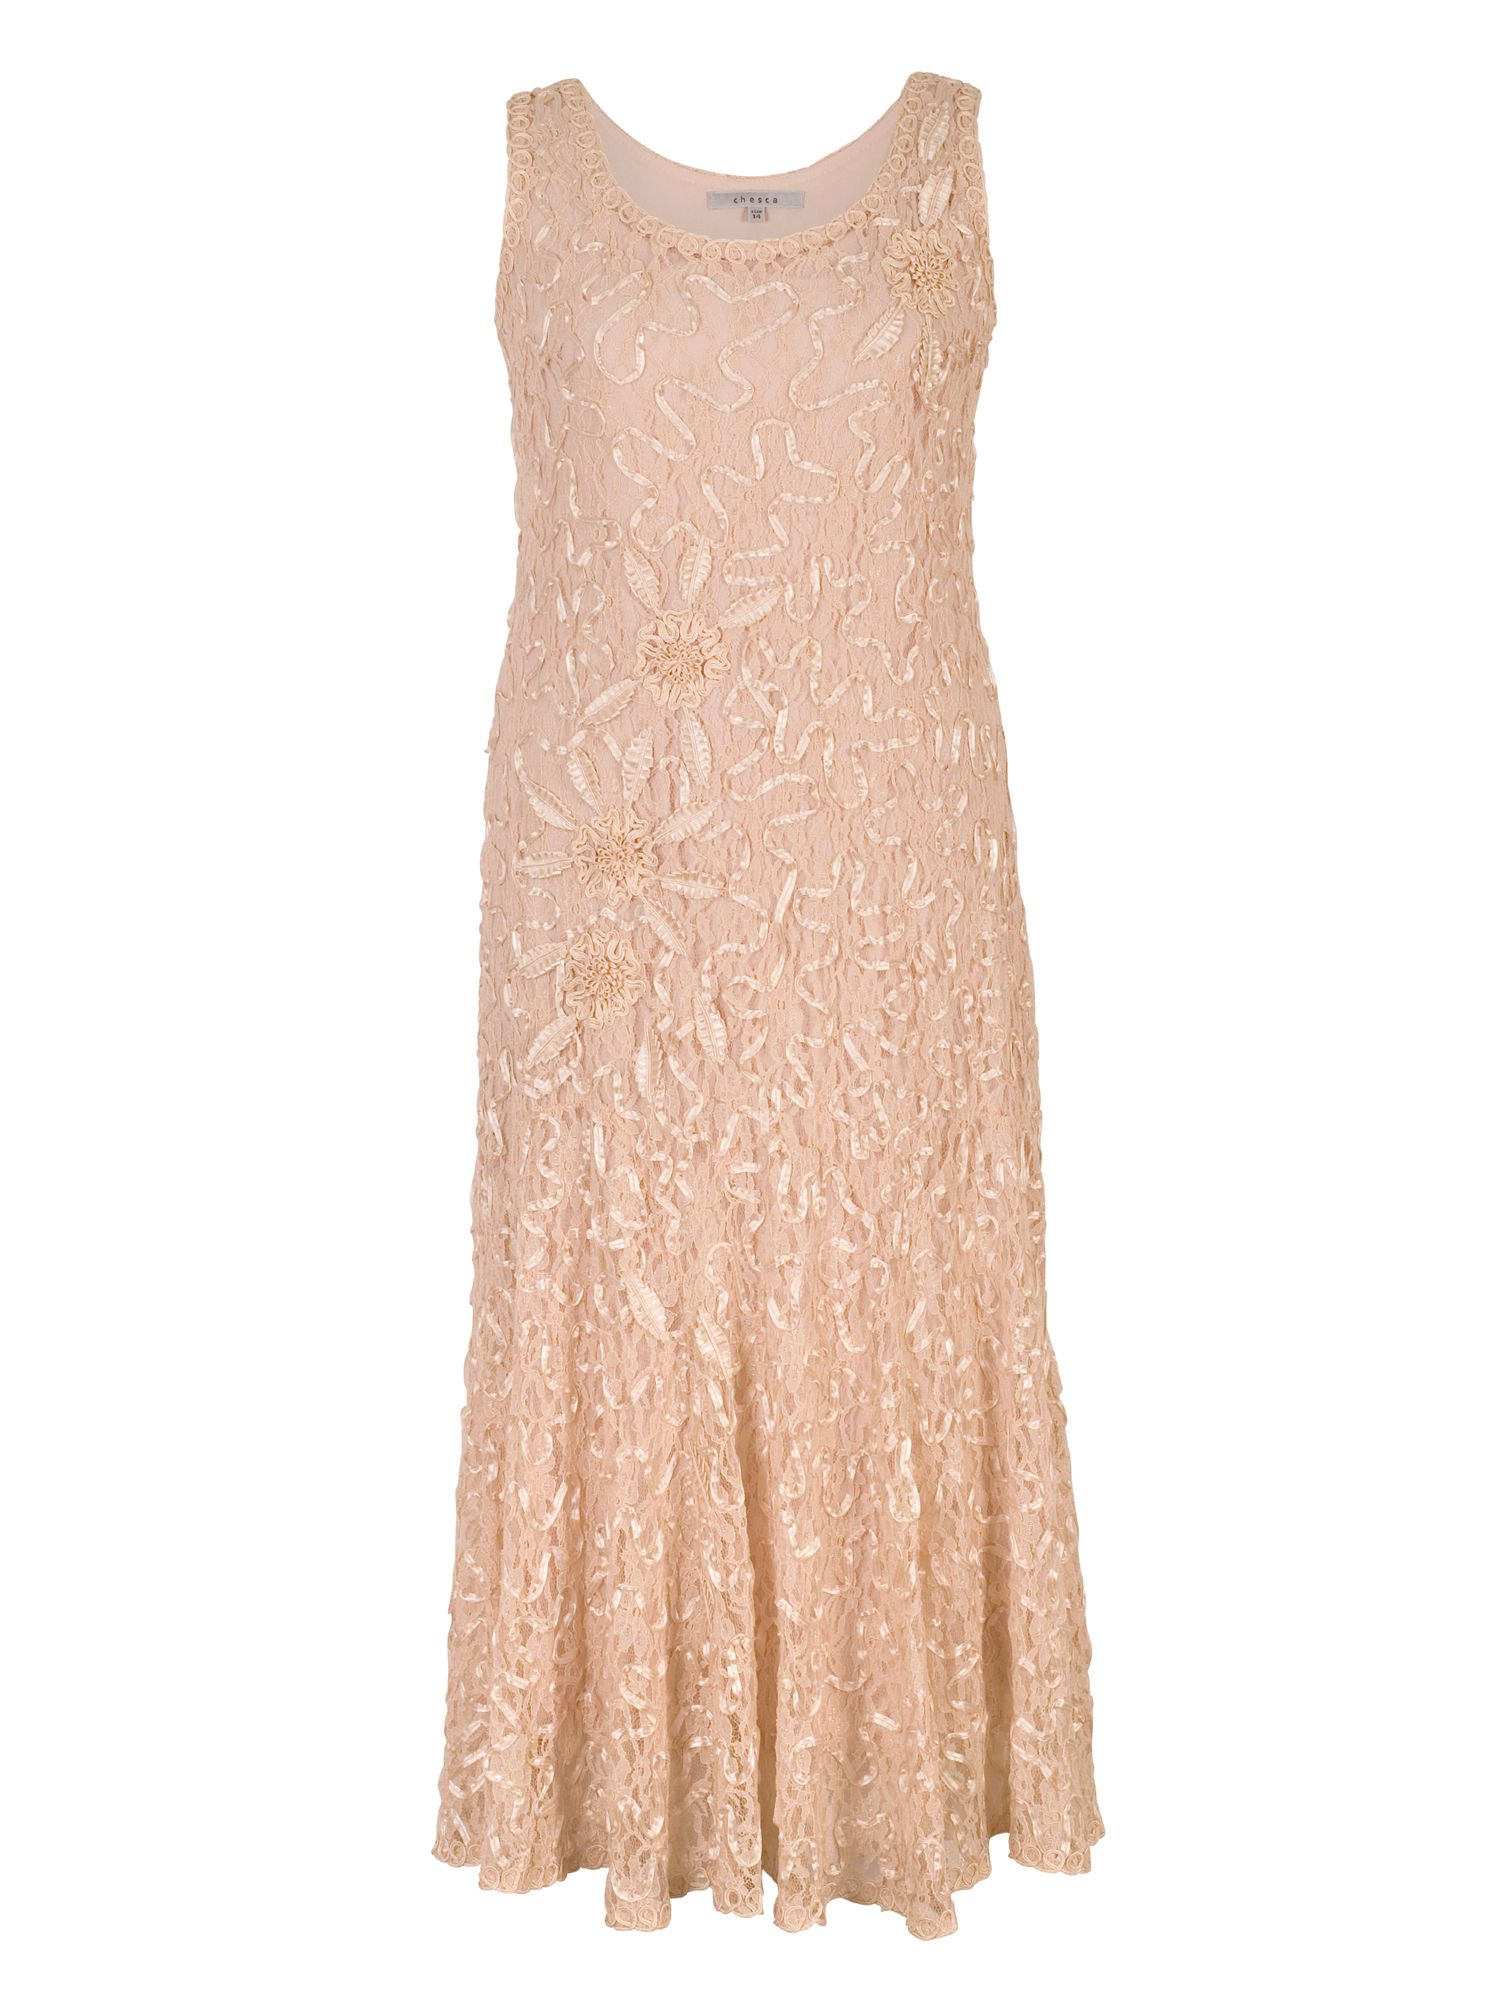 Chesca Lace Dress with Cornelli Trim, Champagne